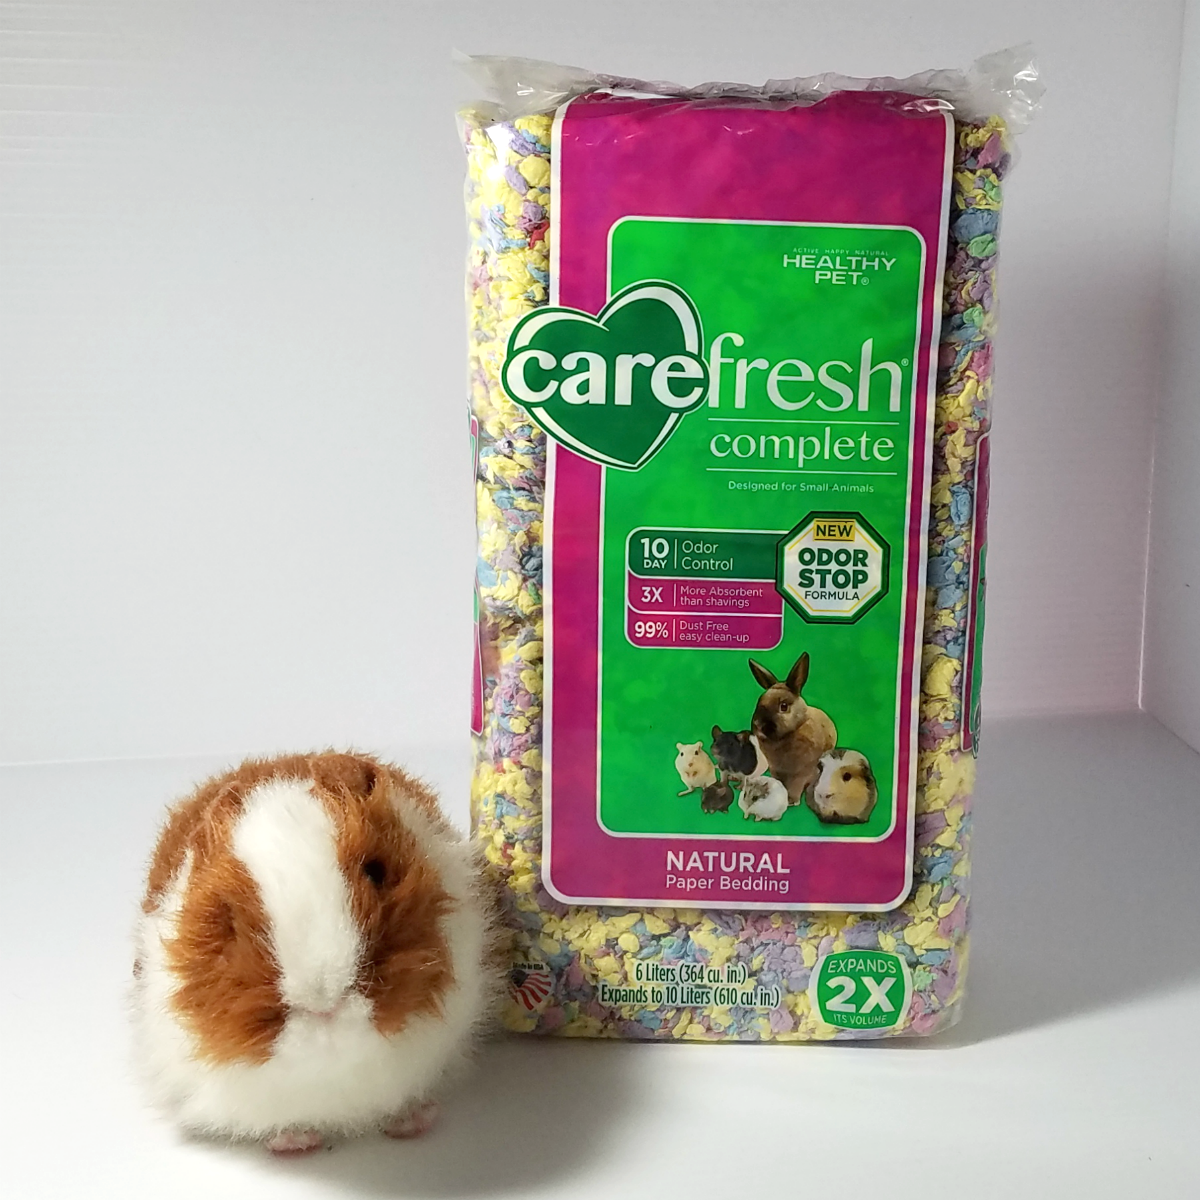 Carefresh Confetti 10 Liter